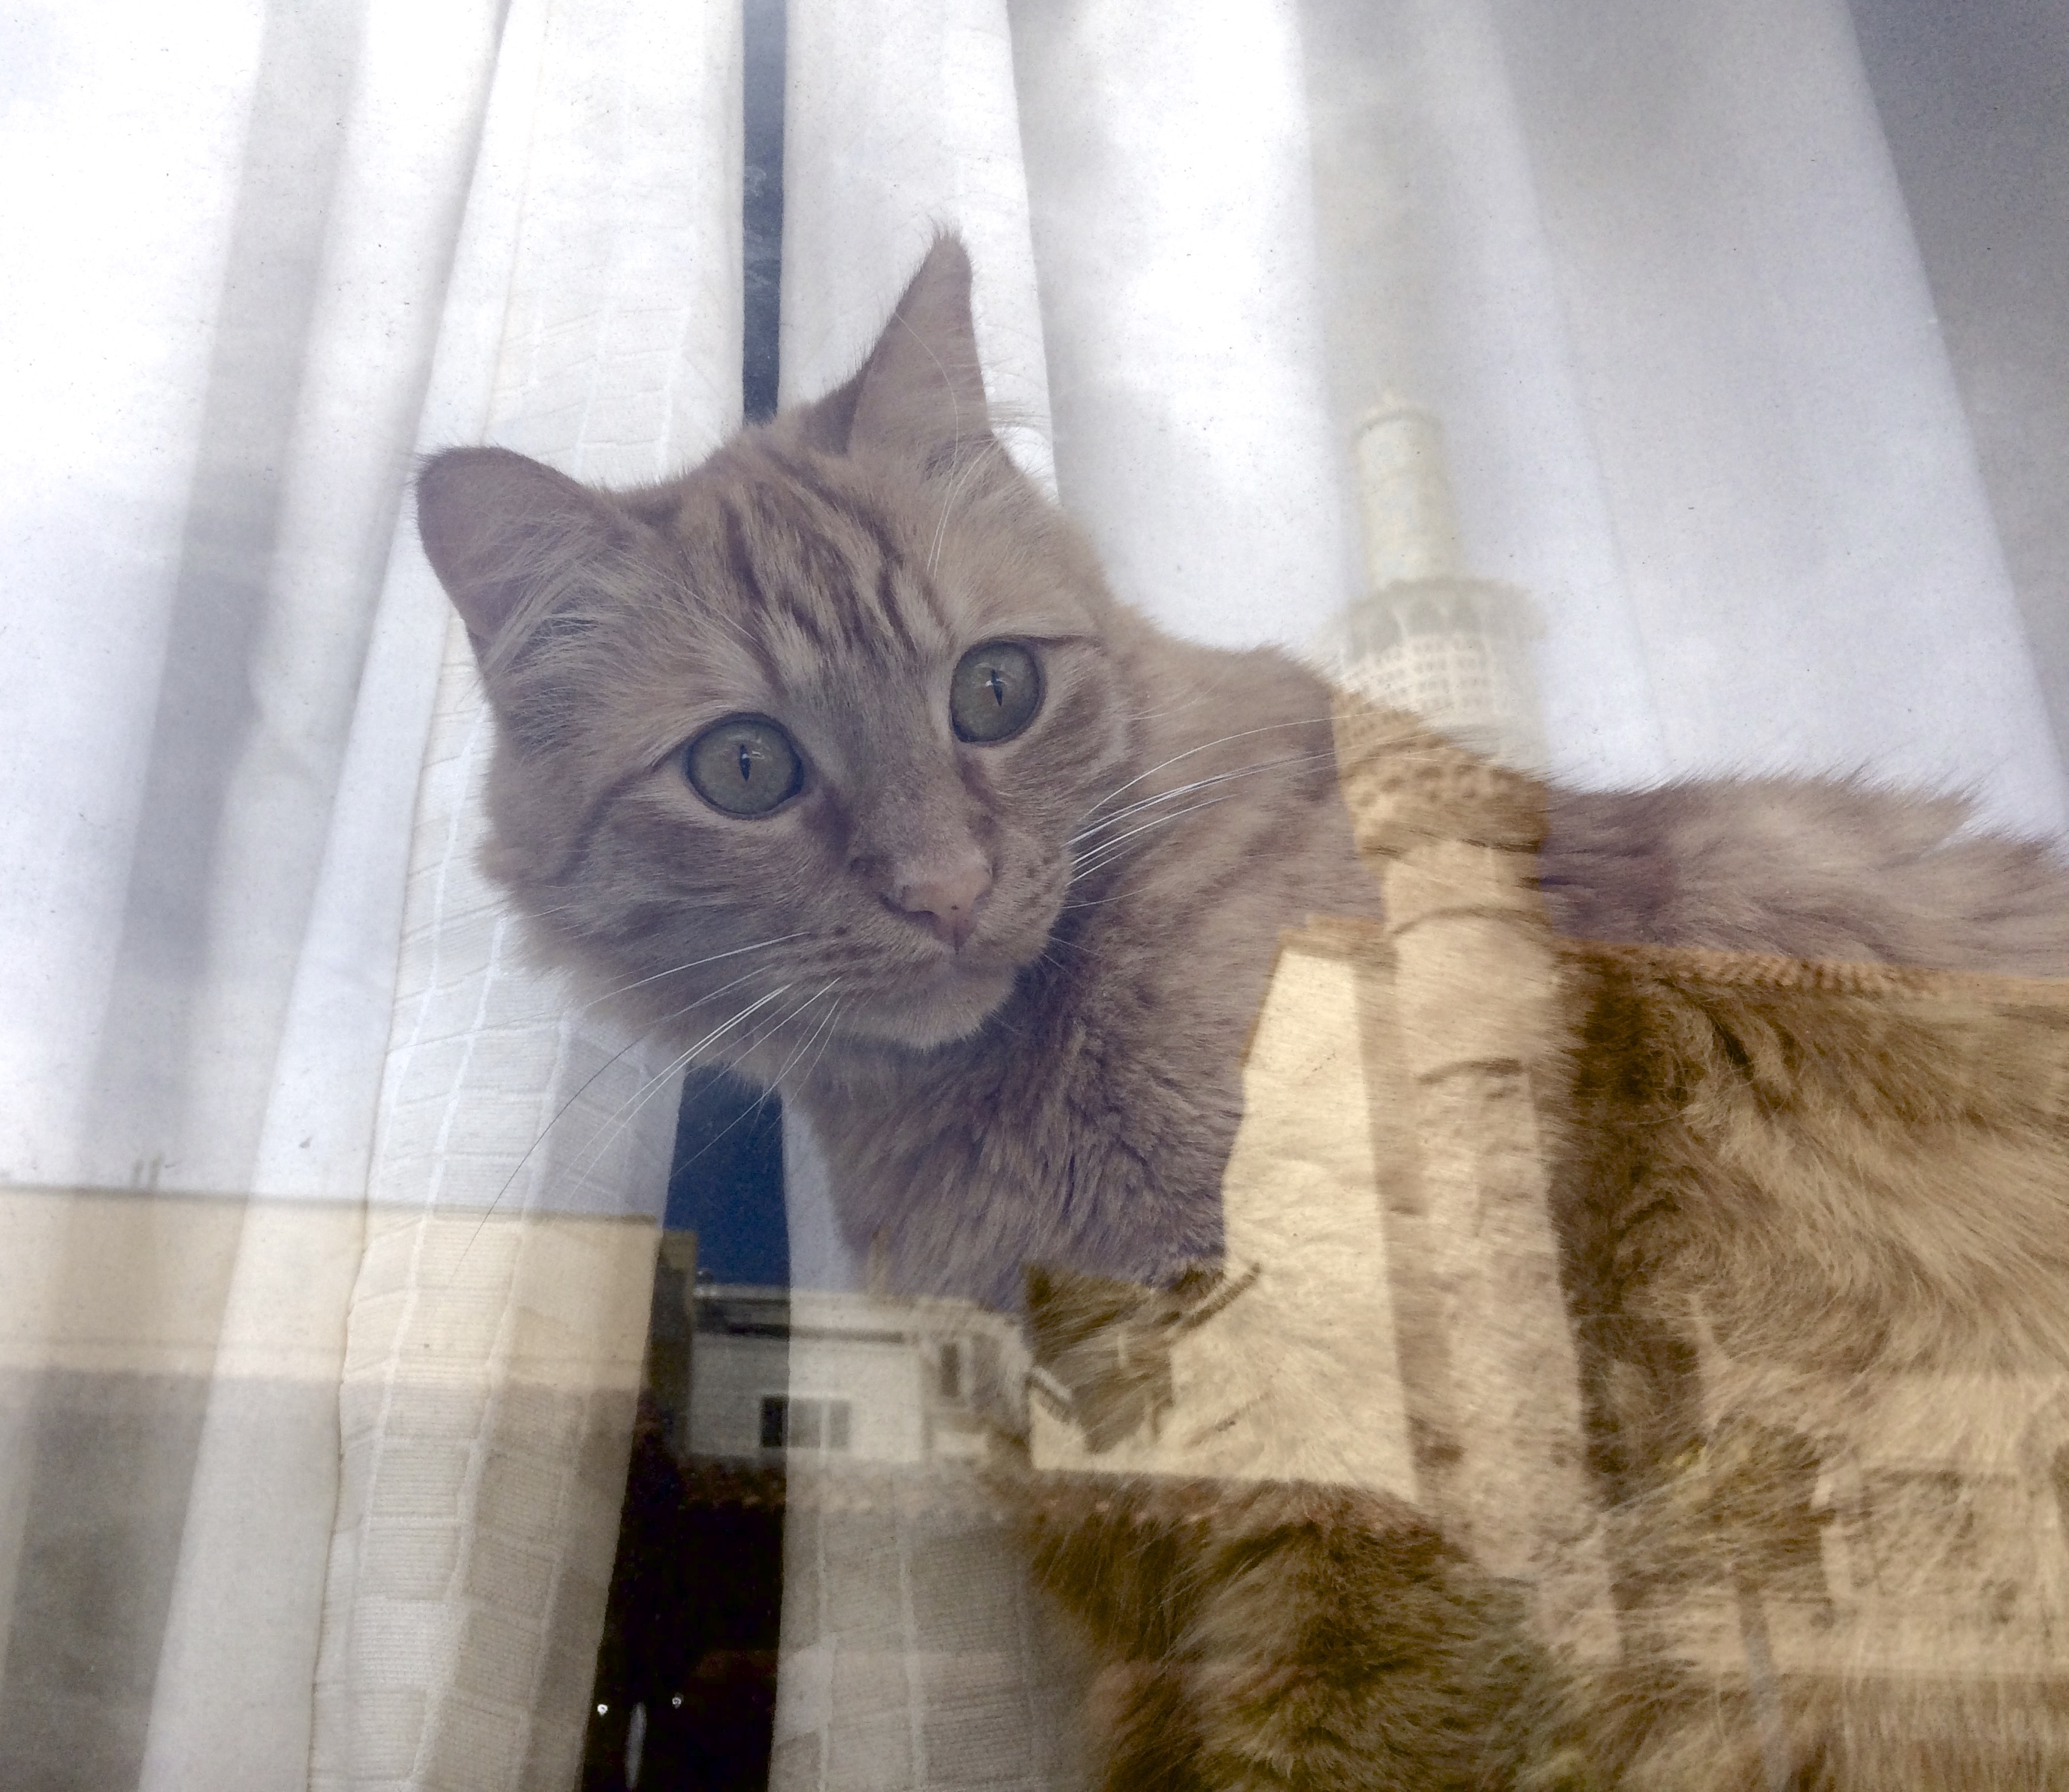 Marmalade Tabby Cat In Window With Weird Reflections